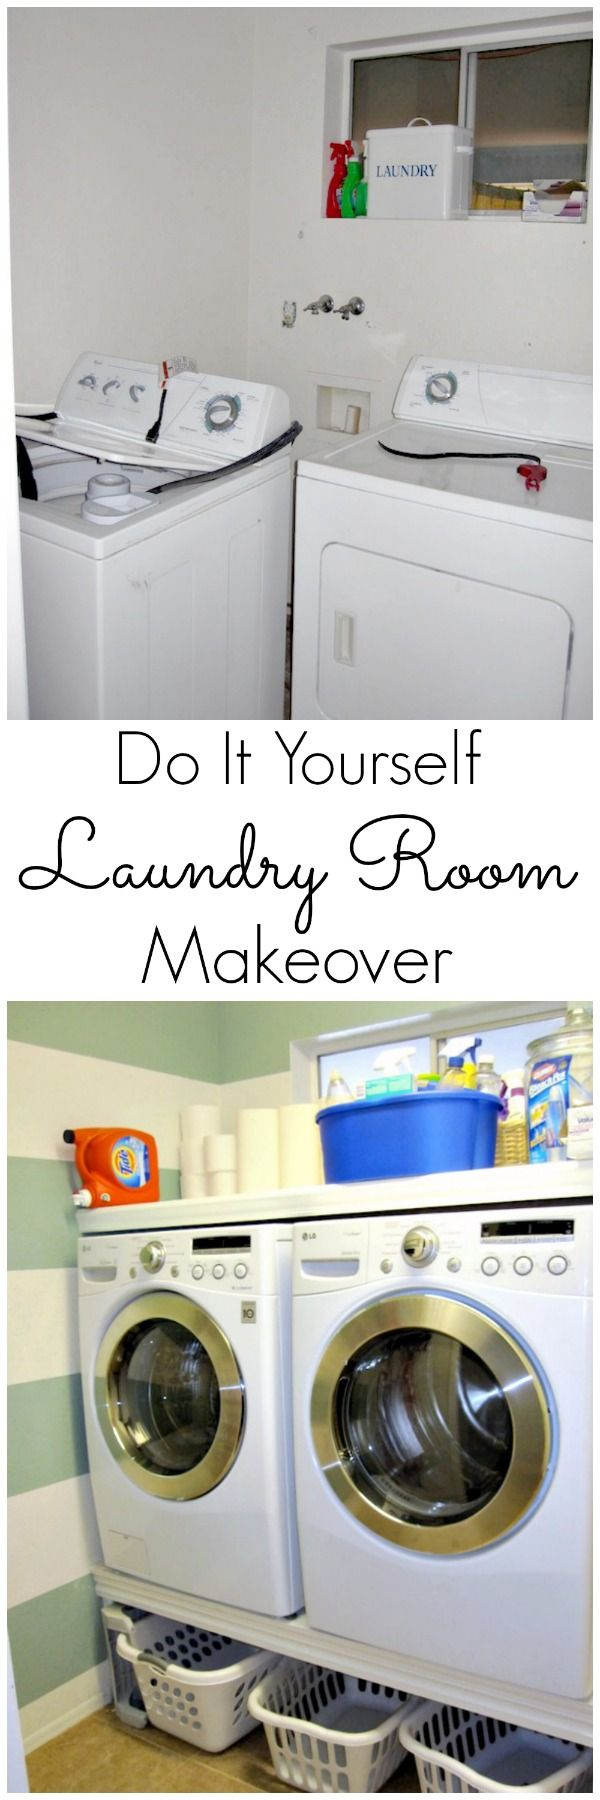 Easy Laundry Room Makeovers 8 Best Laundry Room Ideas Images On Pinterest